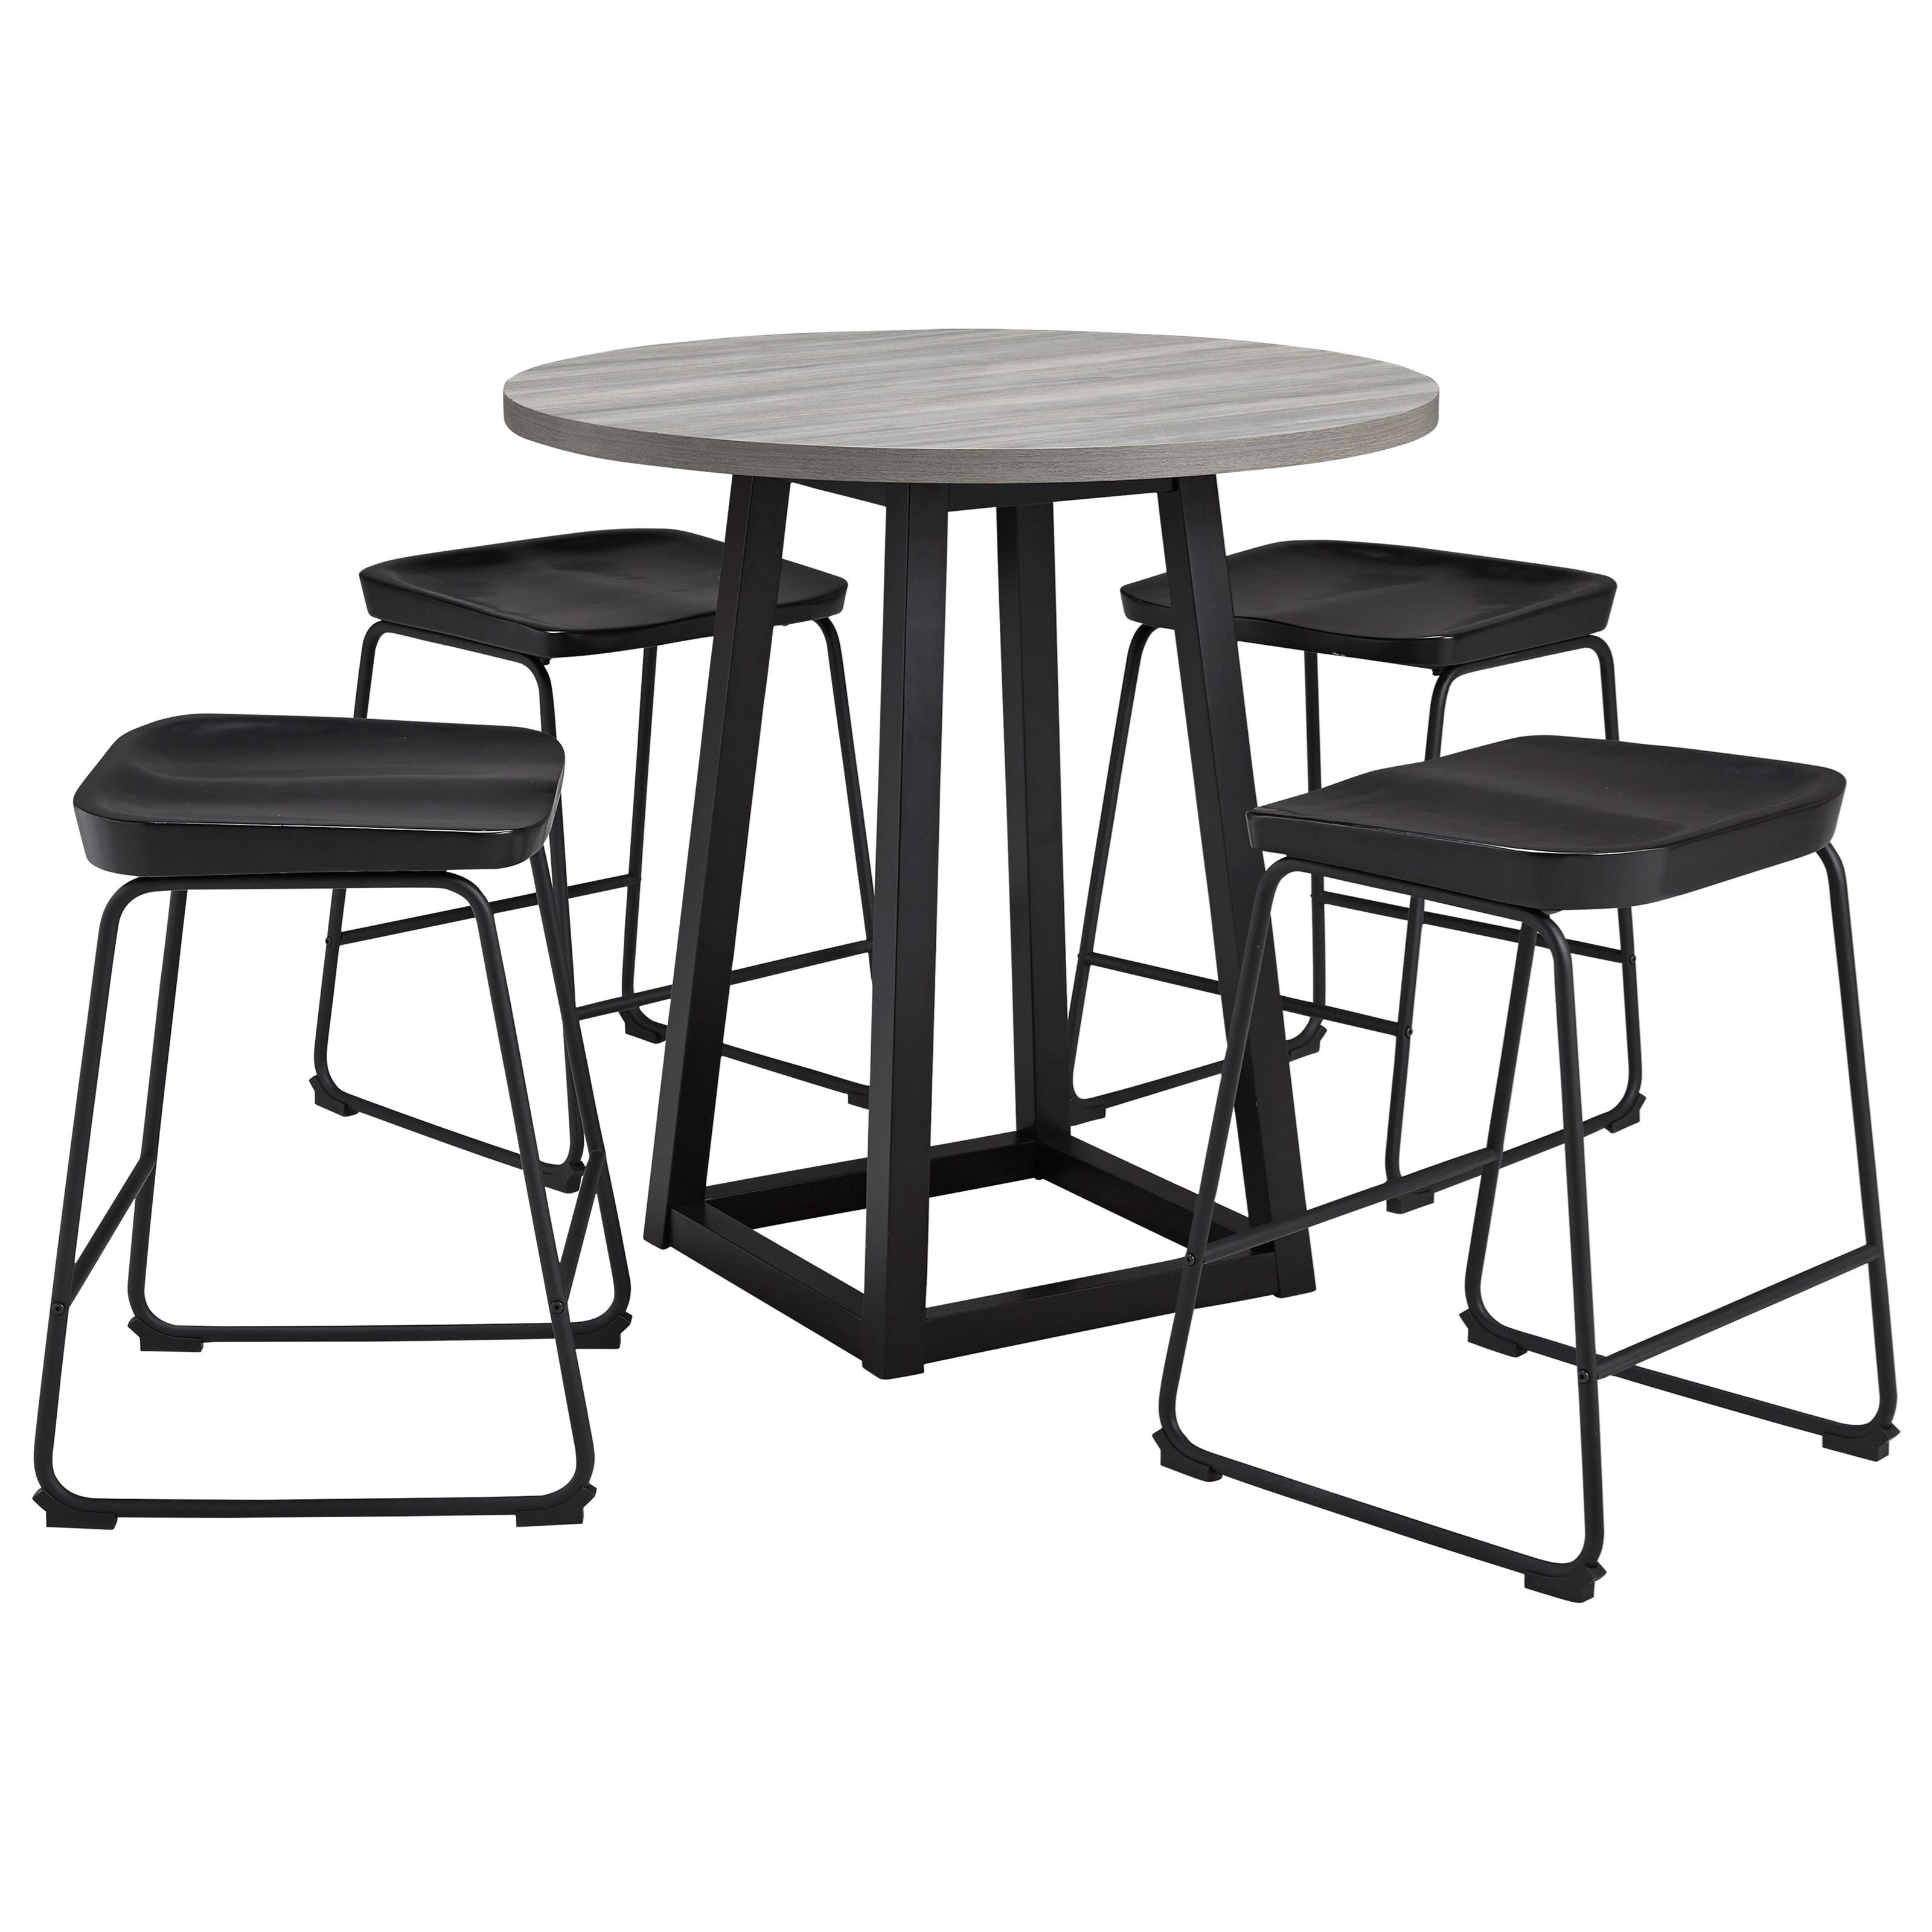 Signature Design By Ashley Showdell 5 Piece Counter Height Dining Table Set Conlin S Furniture Pub Table And Stool Sets